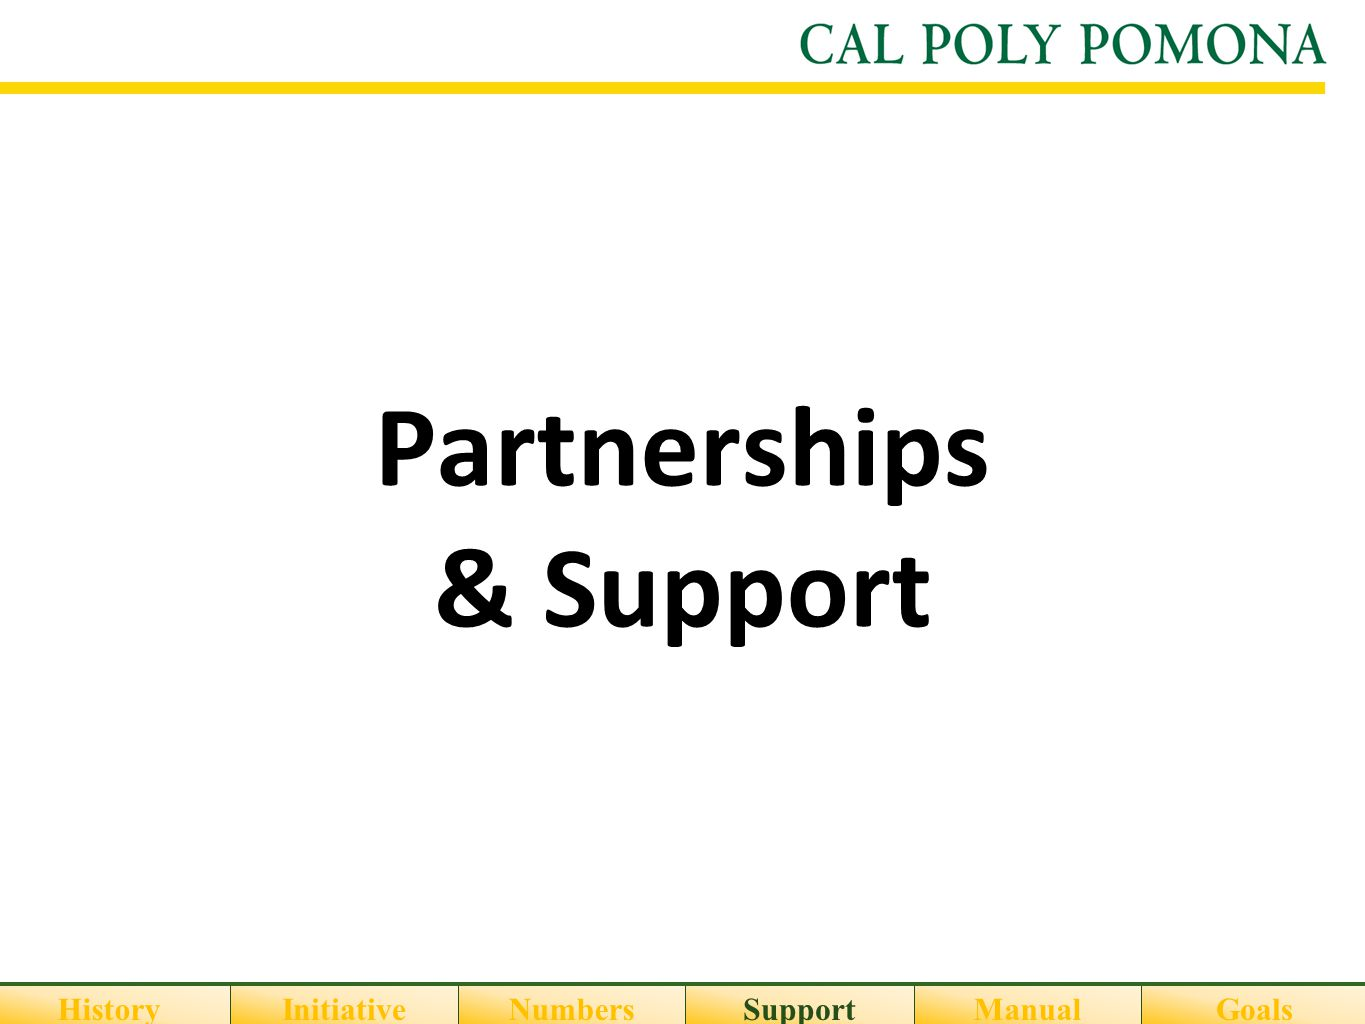 Partnerships & Support HistoryInitiativeNumbersSupportGoalsManual